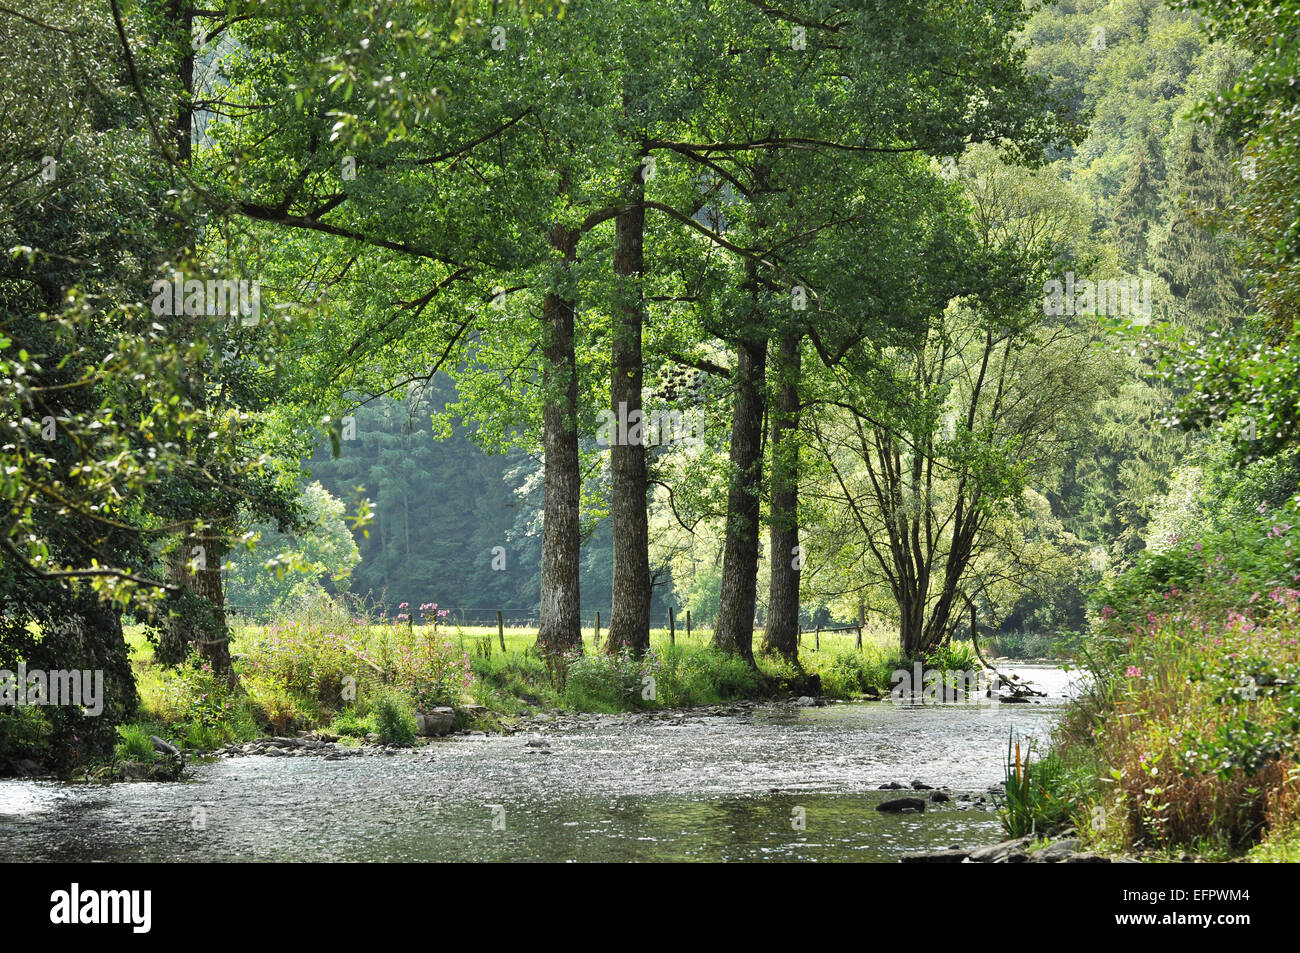 The Ambleve a river in the Ardennes of Belgium - Stock Image